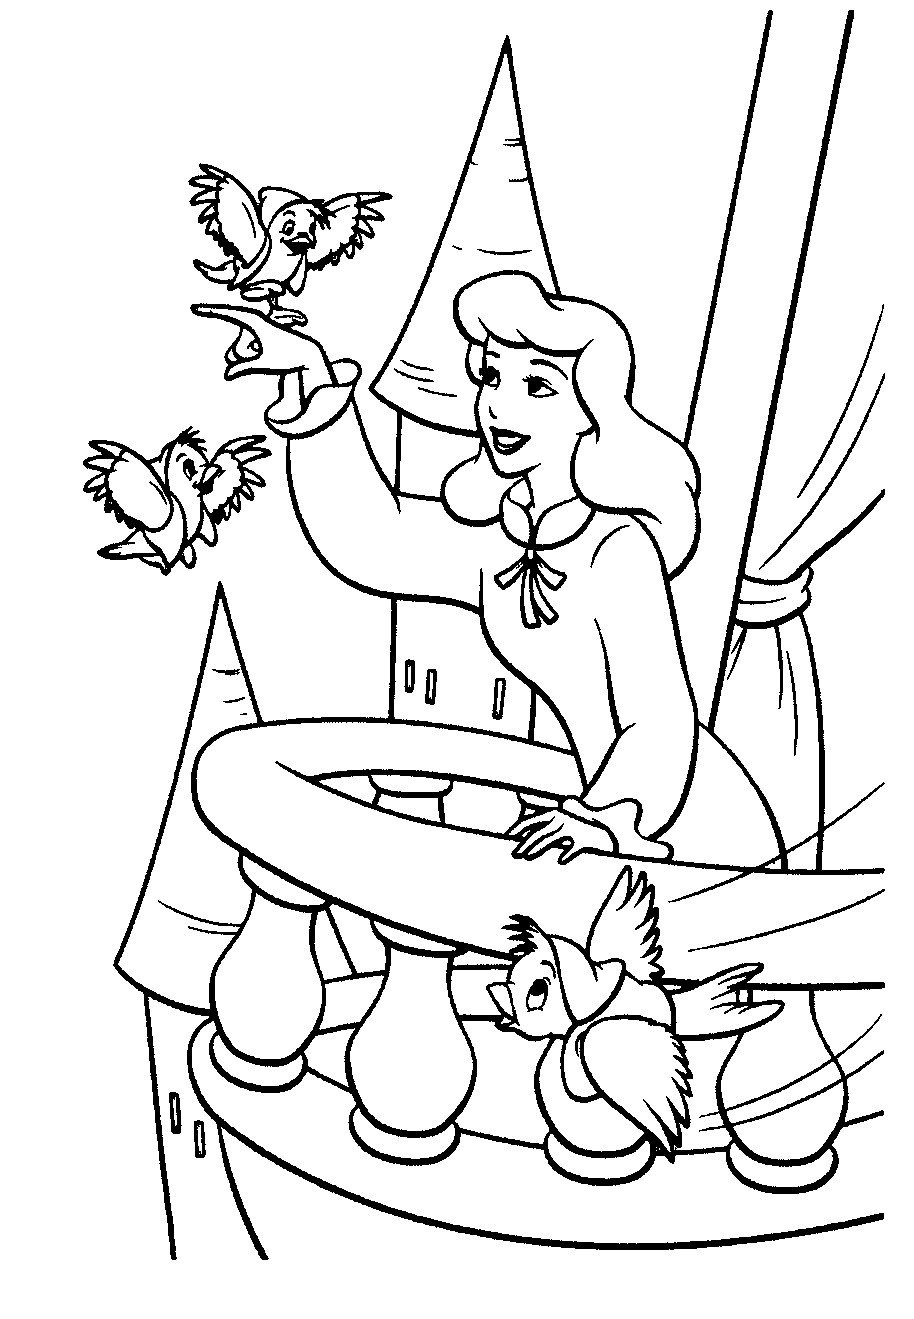 cinderella printable pictures cinderella coloring pages to download and print for free printable pictures cinderella